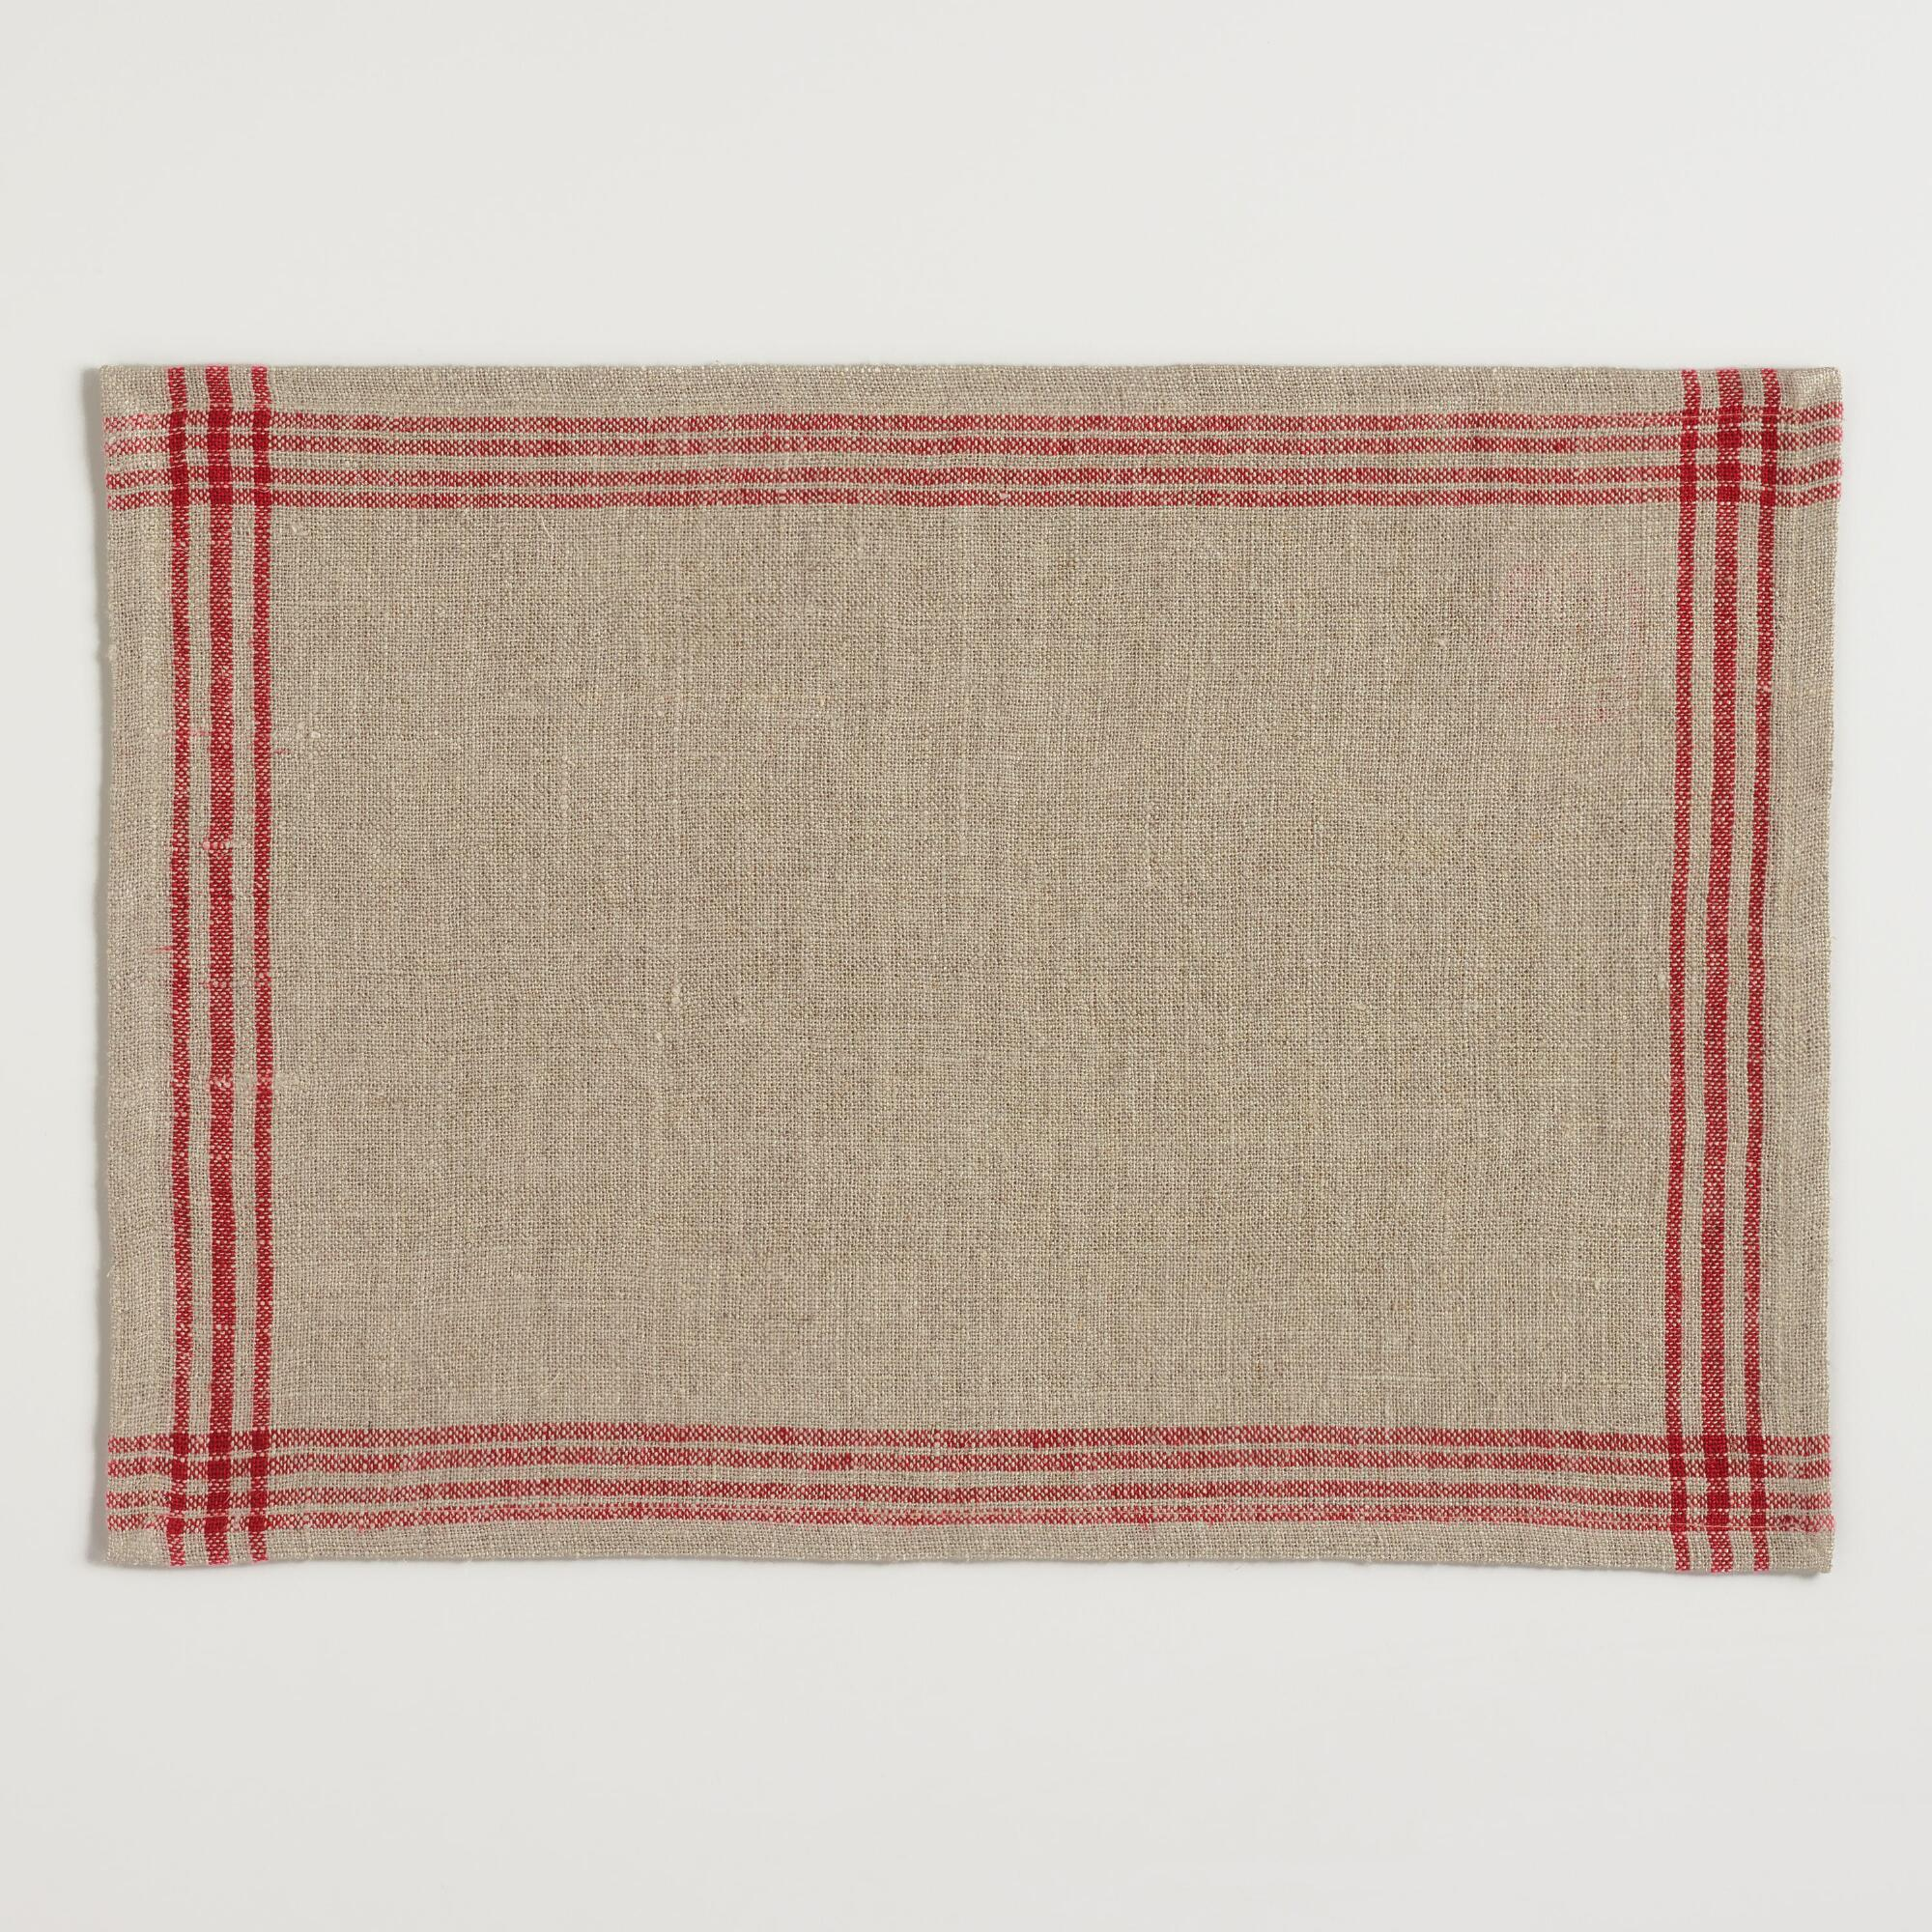 Red Stripe Linen Placemats Set of 4: Red/Natural - Natural Fiber by World Market